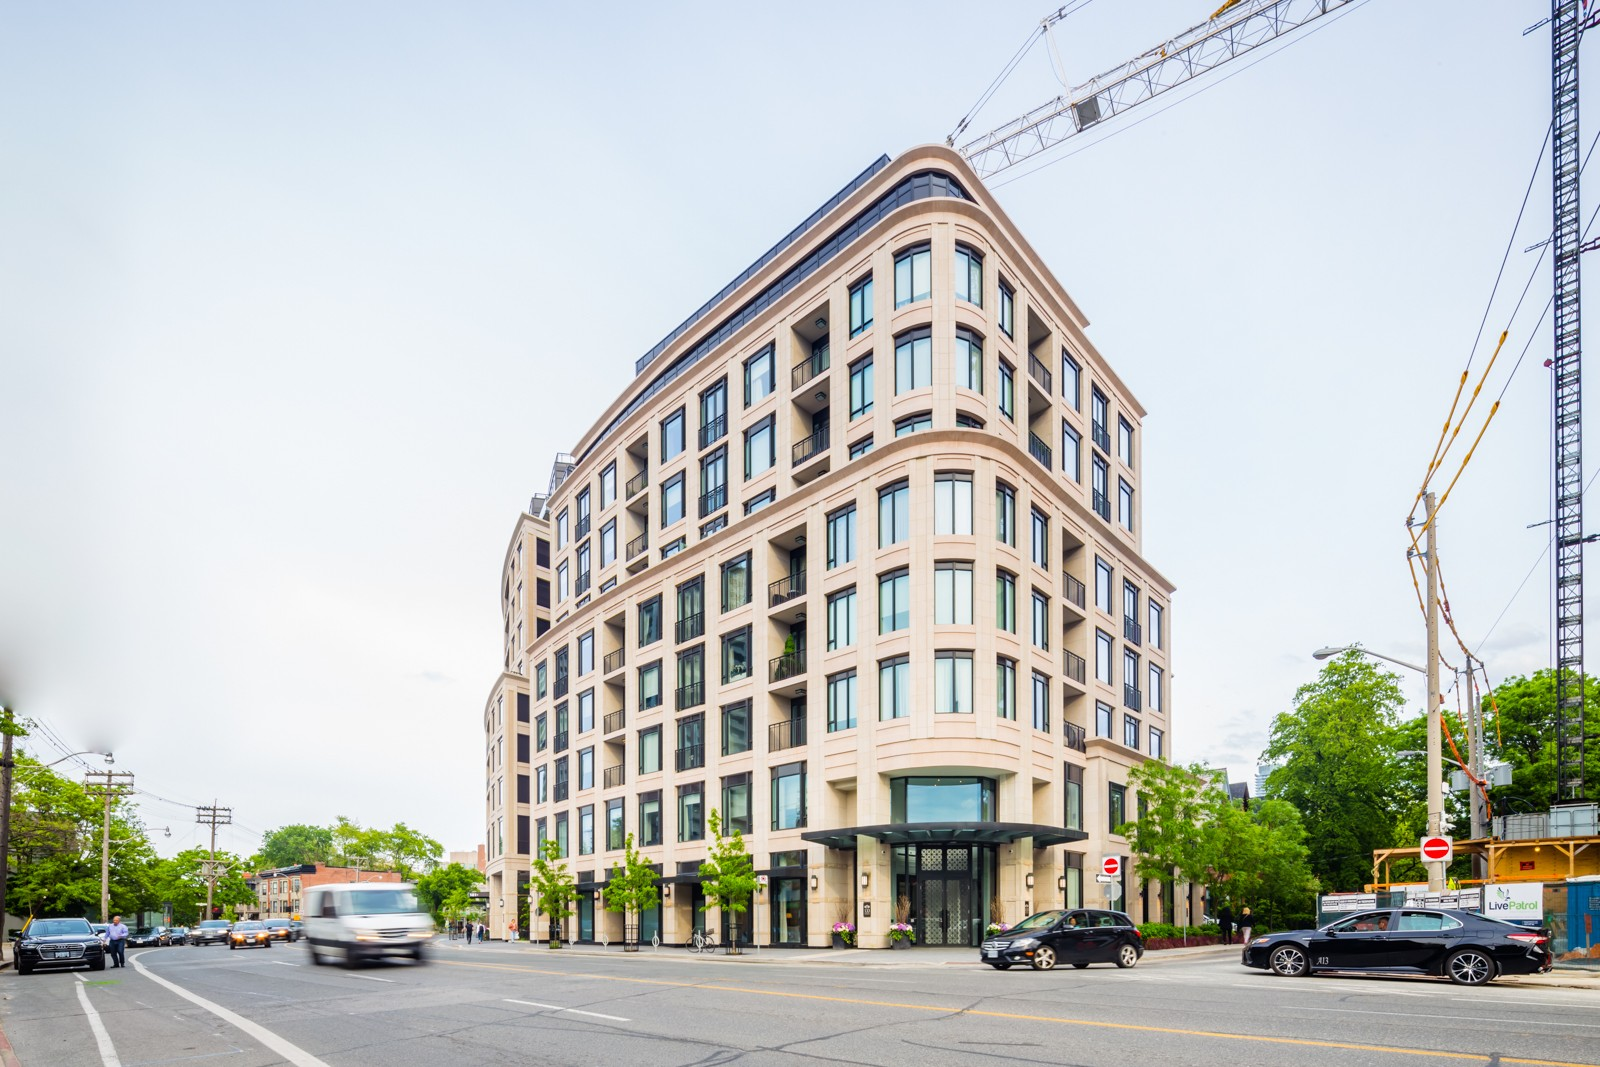 The Deauville at 185 Davenport Rd, Toronto 0